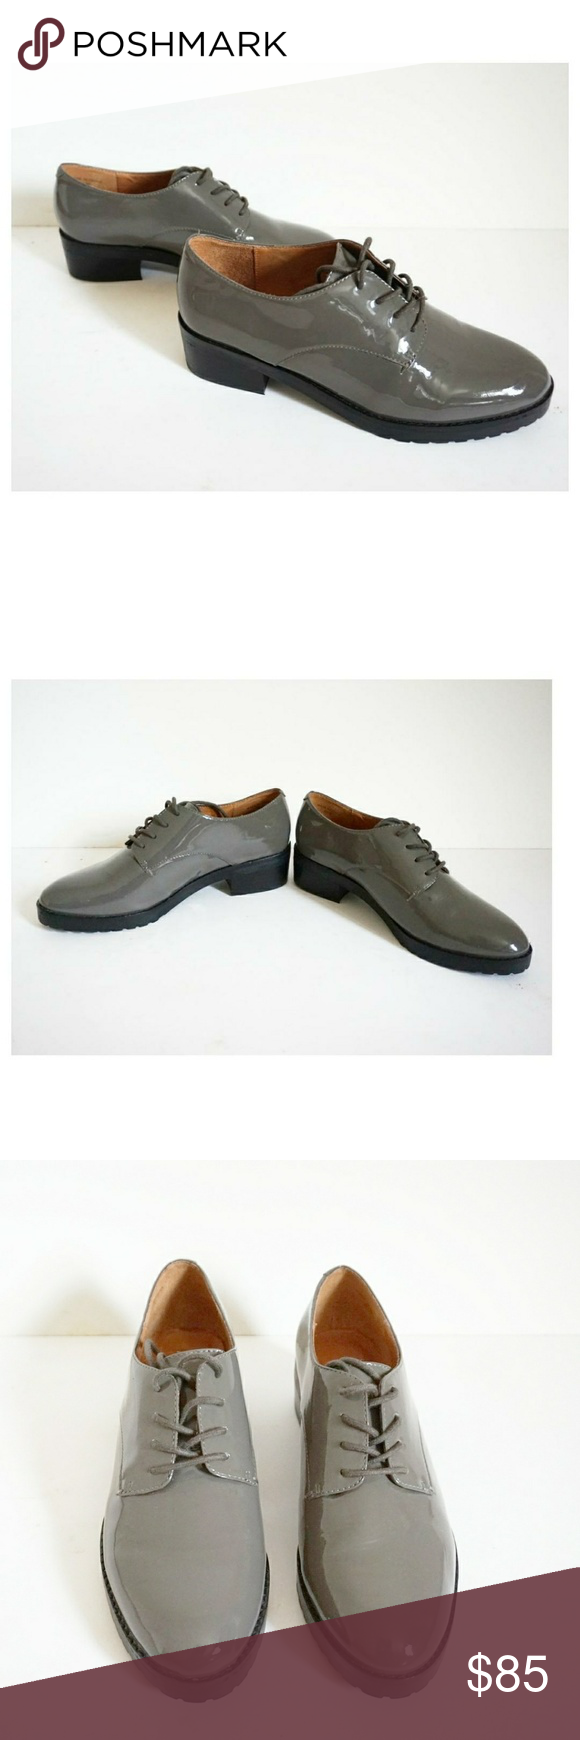 New Concept Rebecca Minkoff Gray Phoebe Patent leather Oxfords